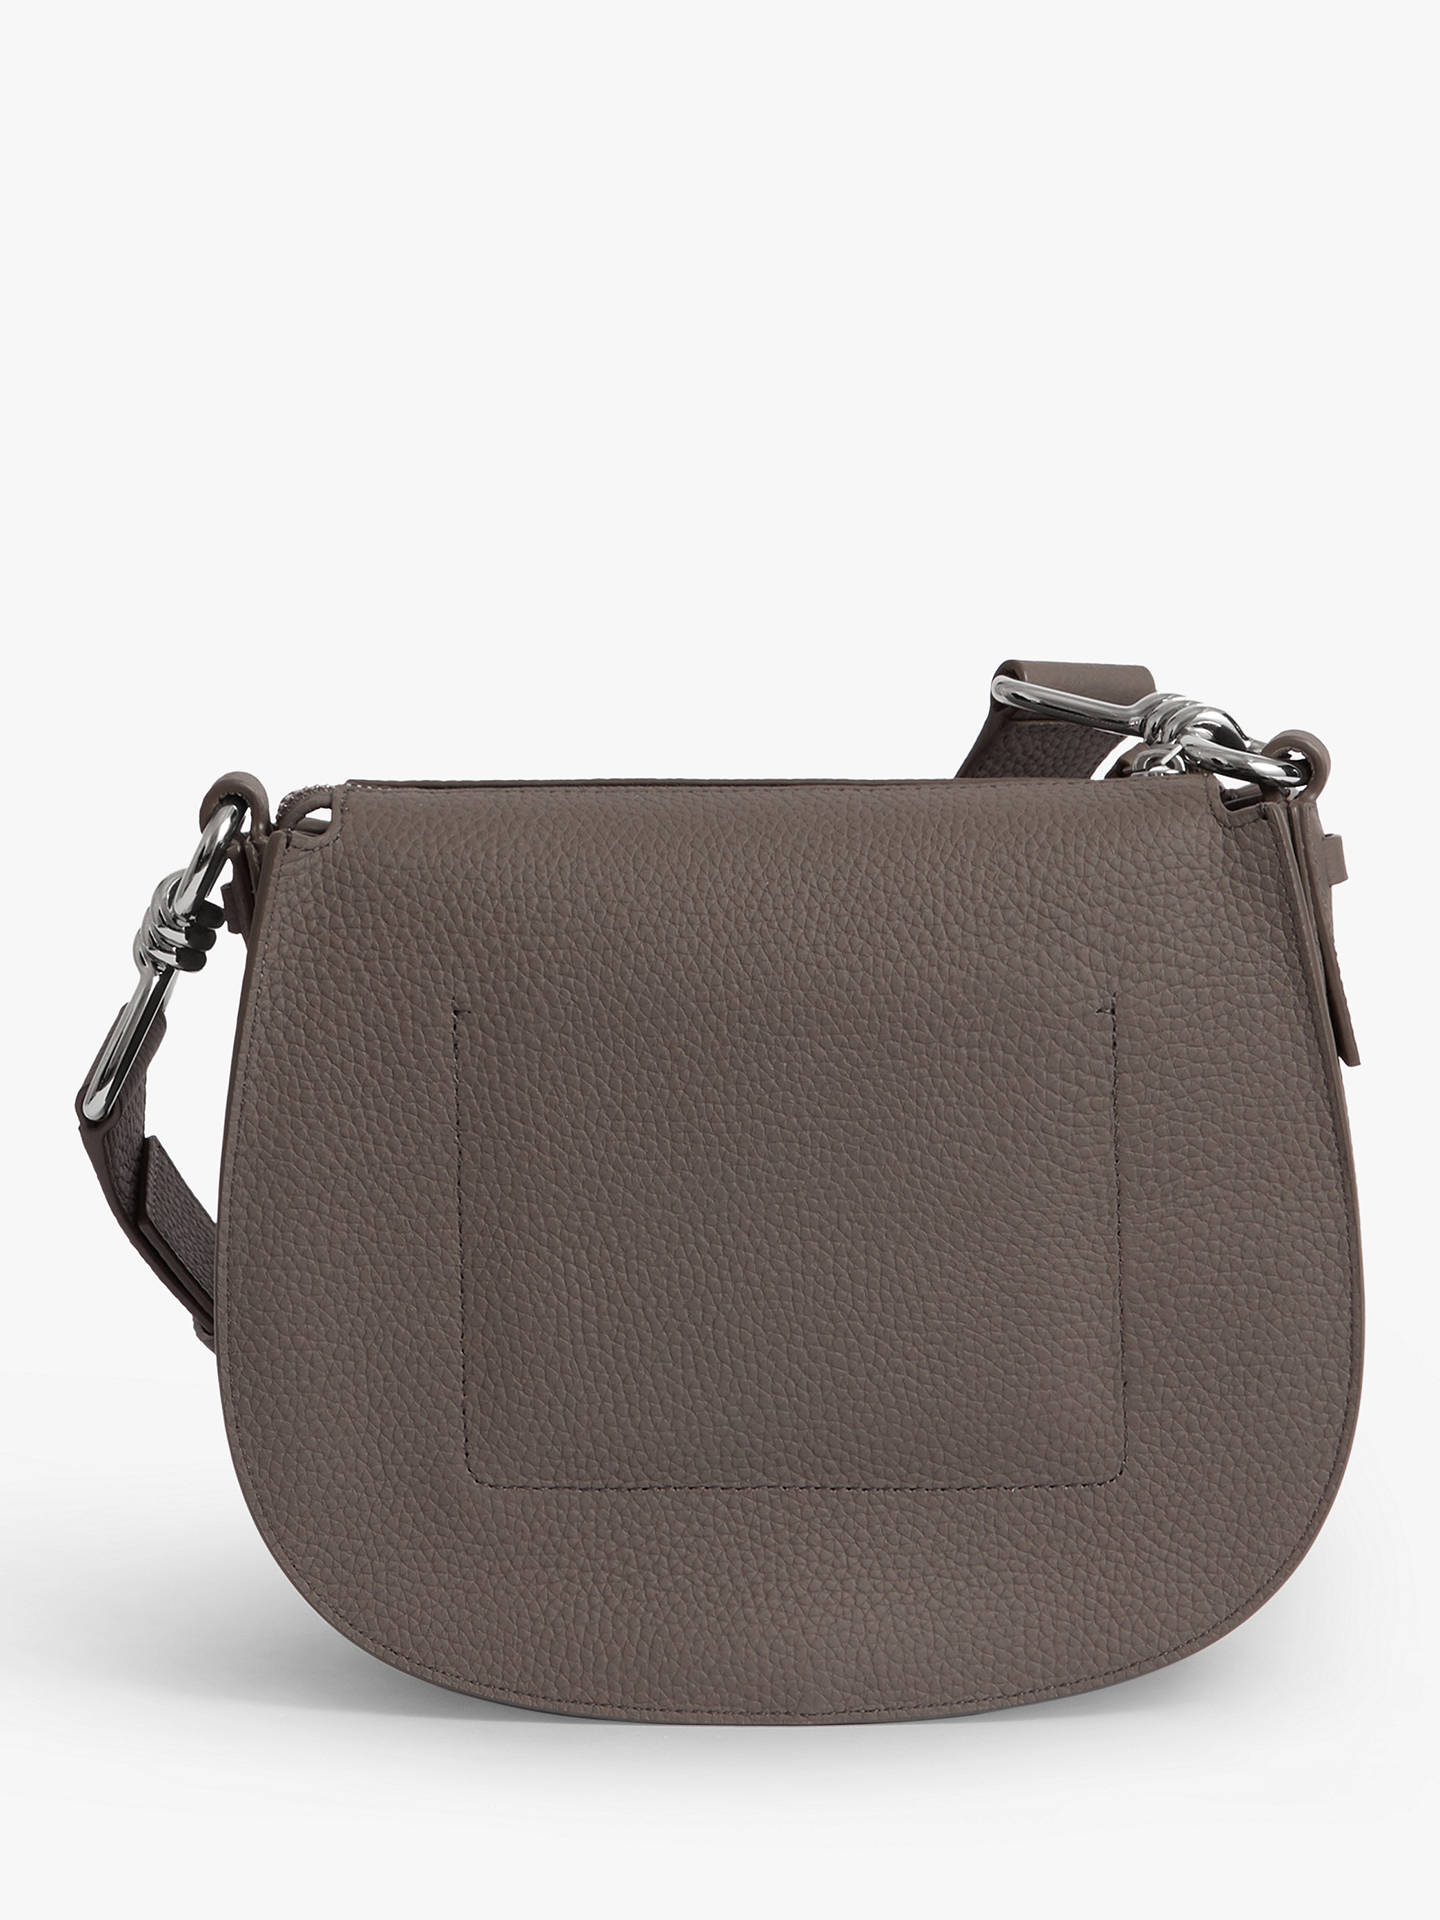 349ad4a1f Buy AllSaints Captain Lea Round Leather Cross Body Bag, Storm Grey Online  at johnlewis.